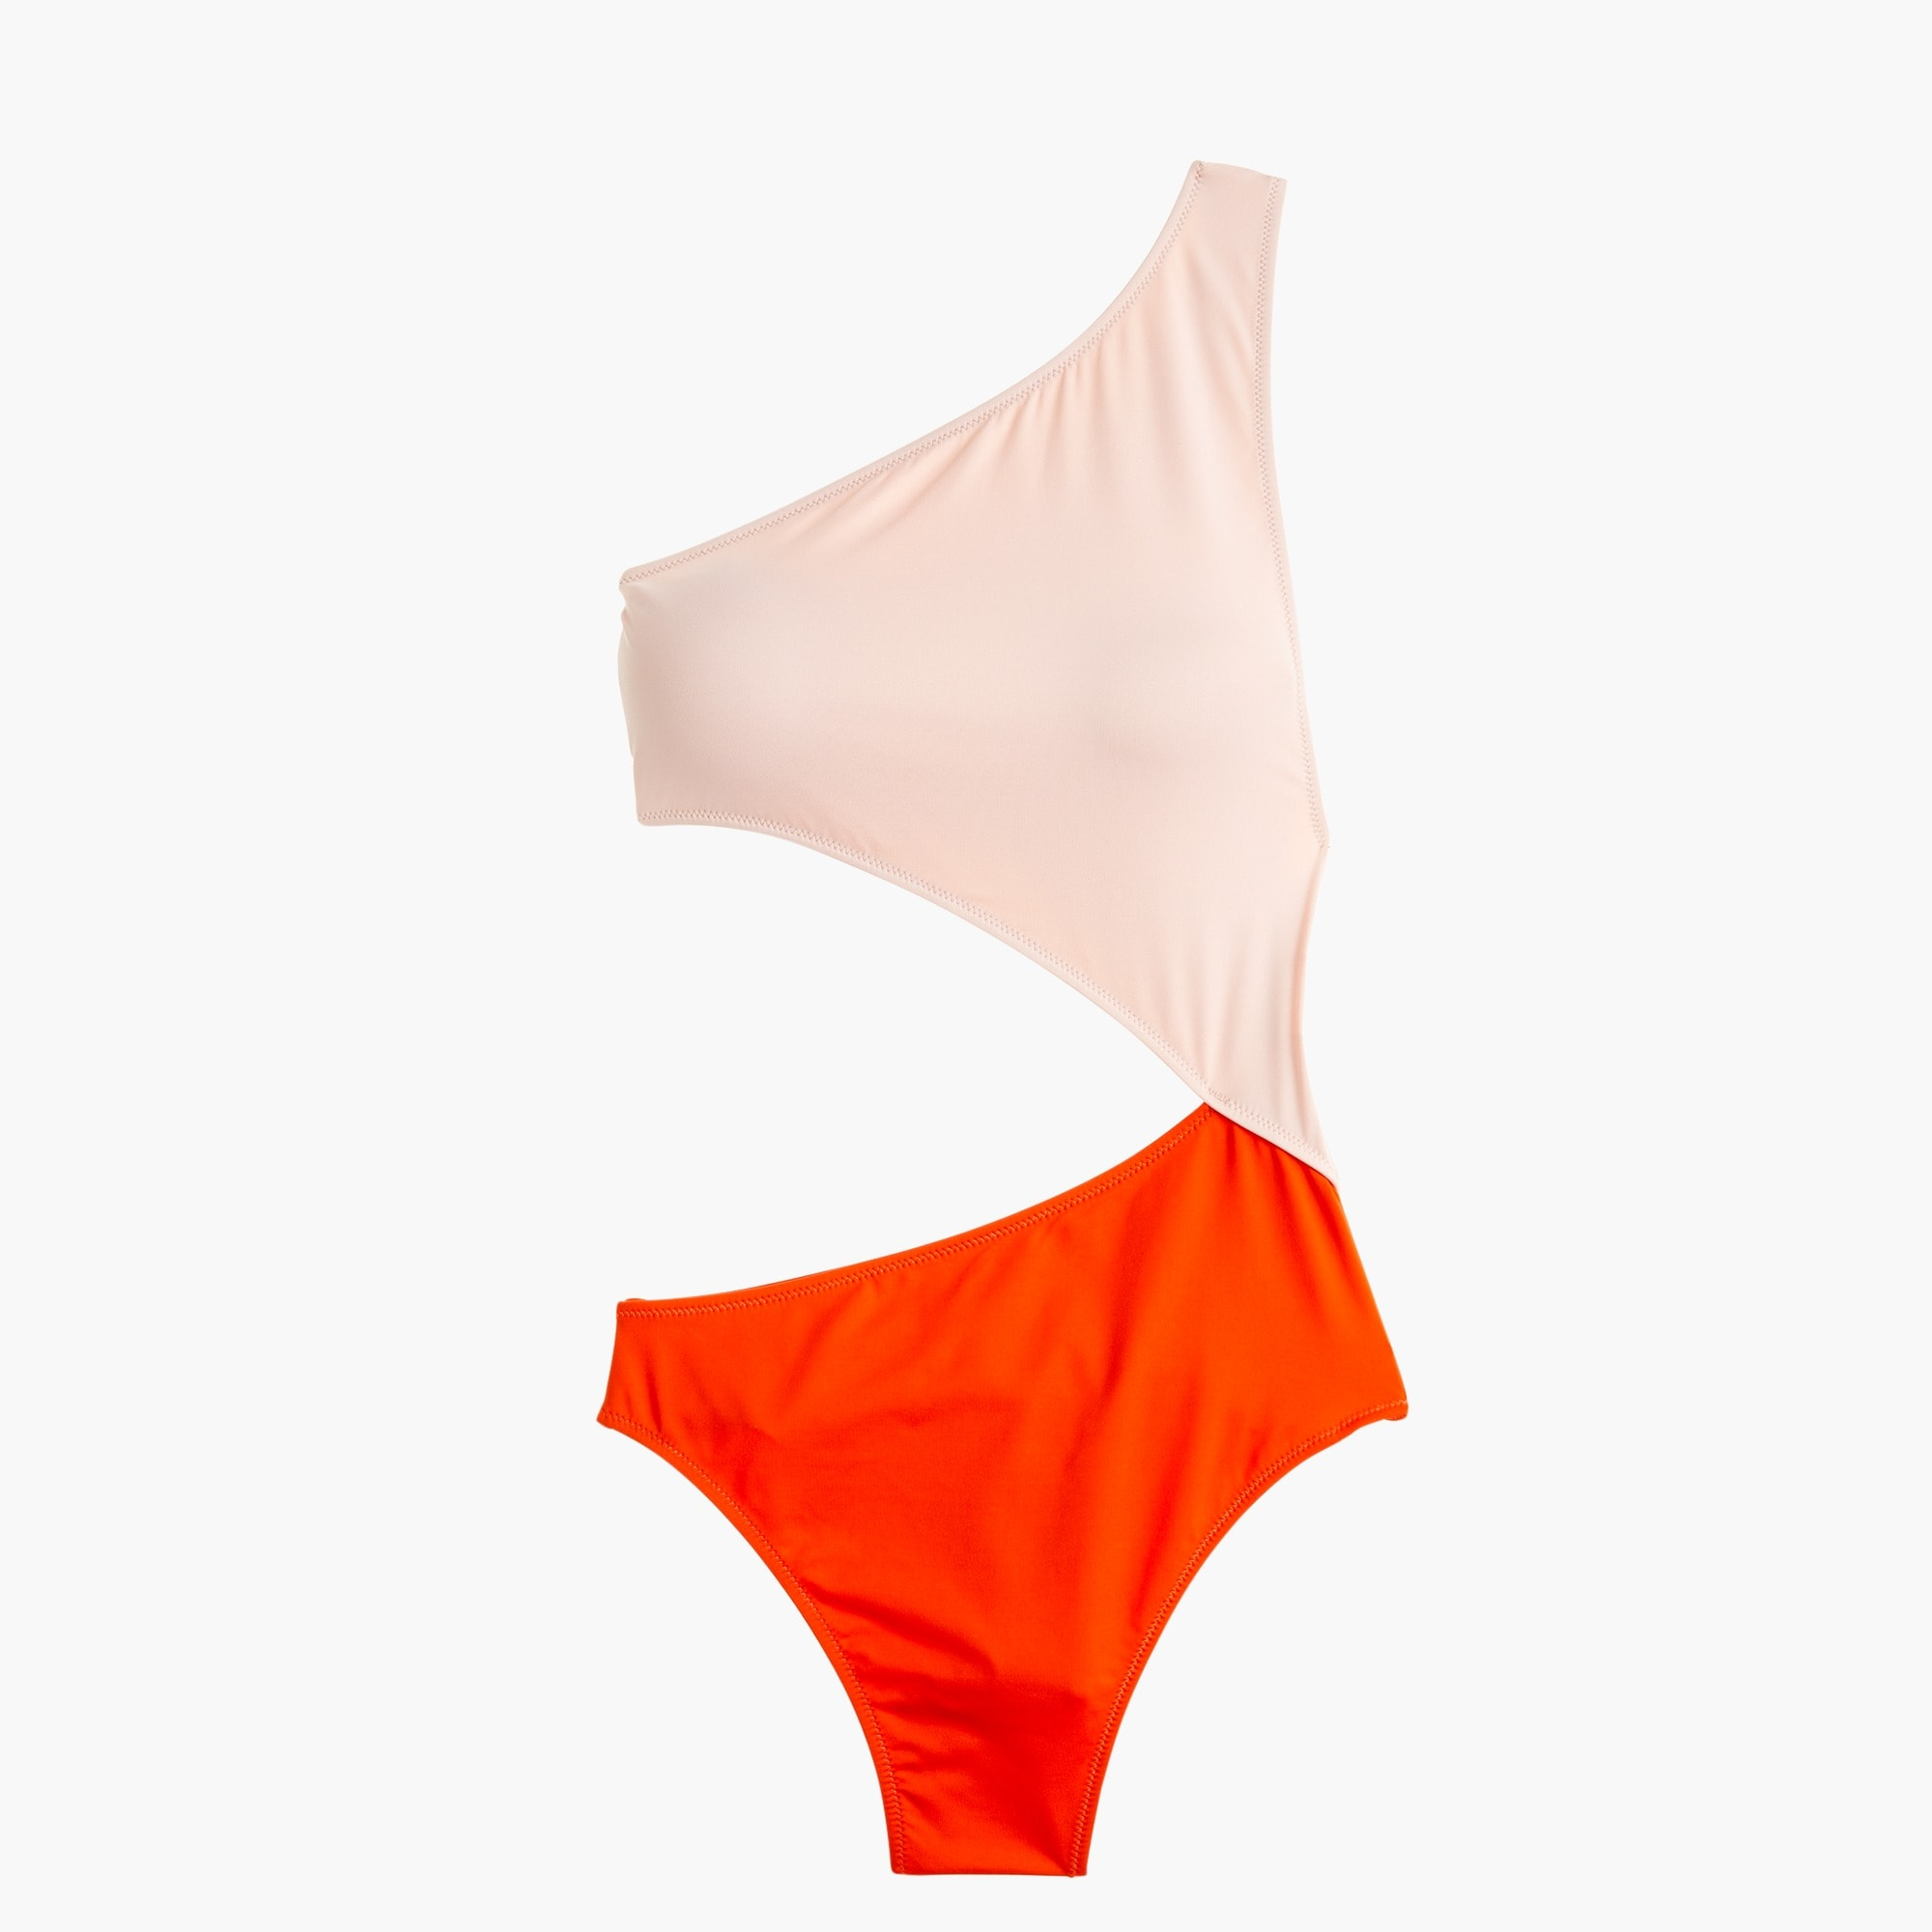 Tilden cutout one-piece swimsuit